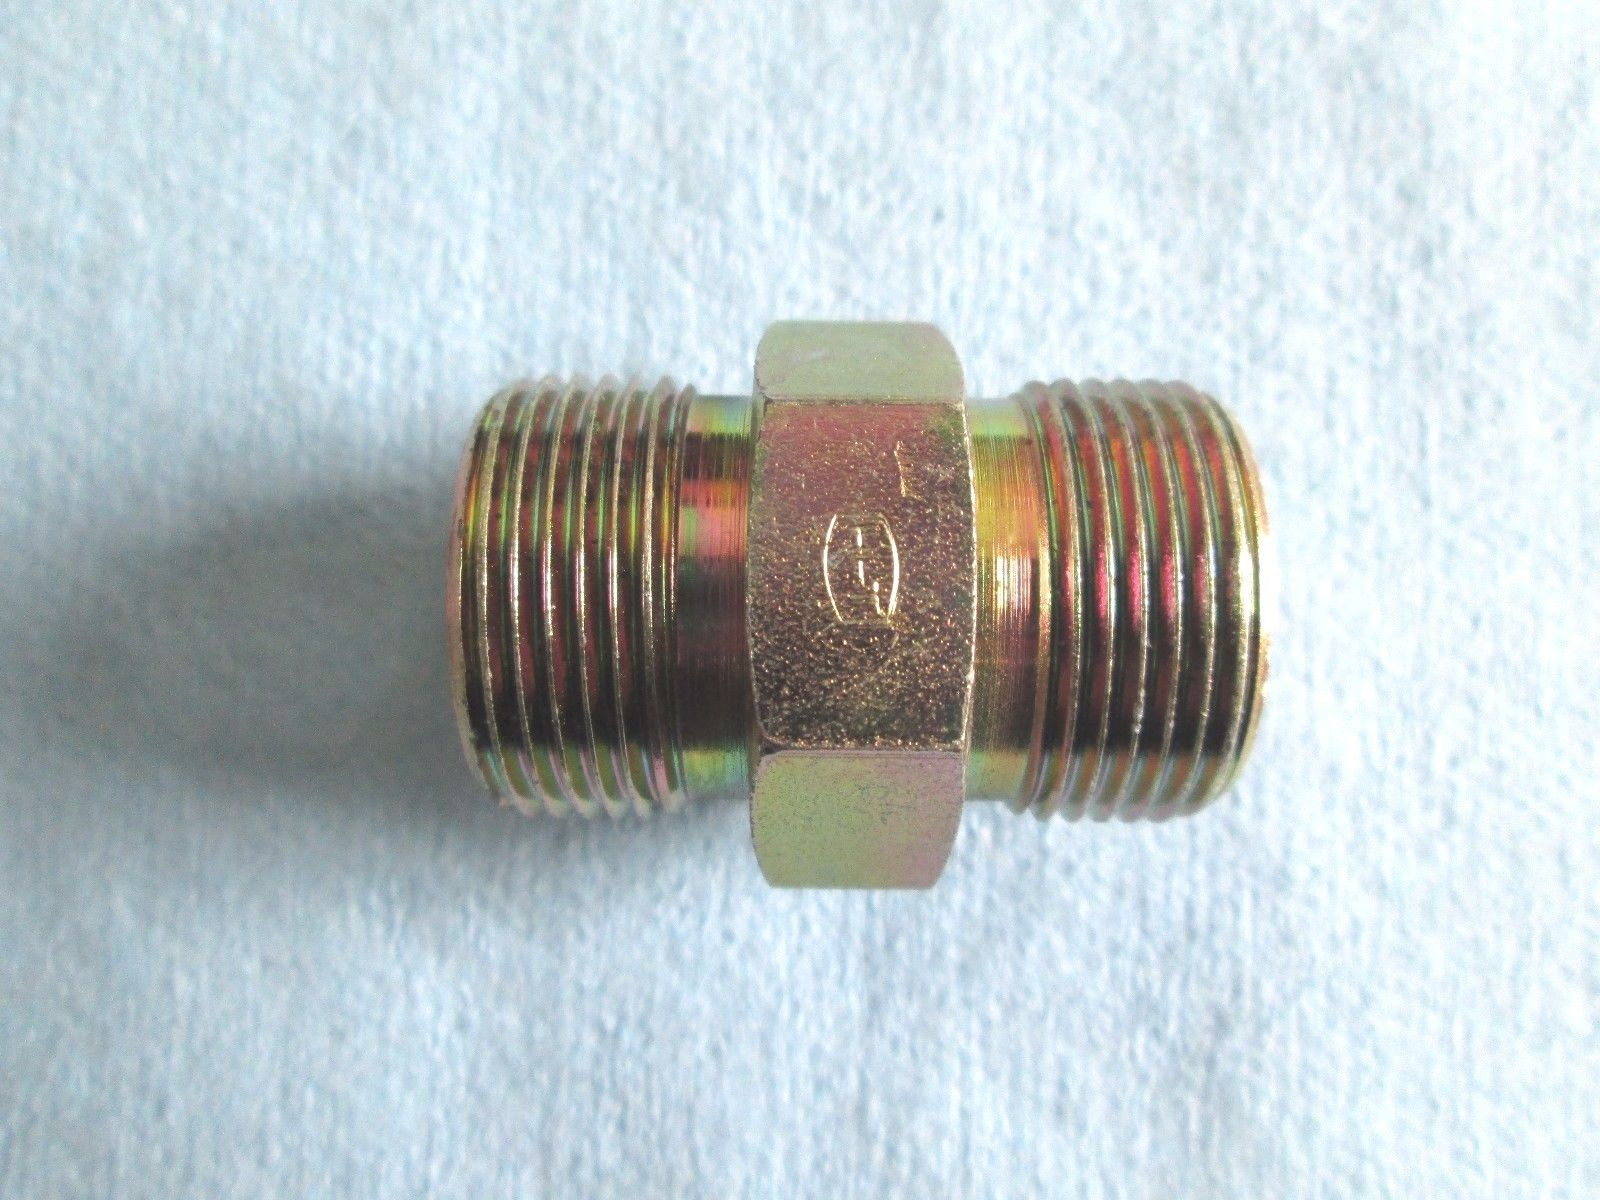 Primary image for 000013744P04, Mahindra, Straight Union, 24mm OD, 1.5 Pitch, will hold 16mm tube